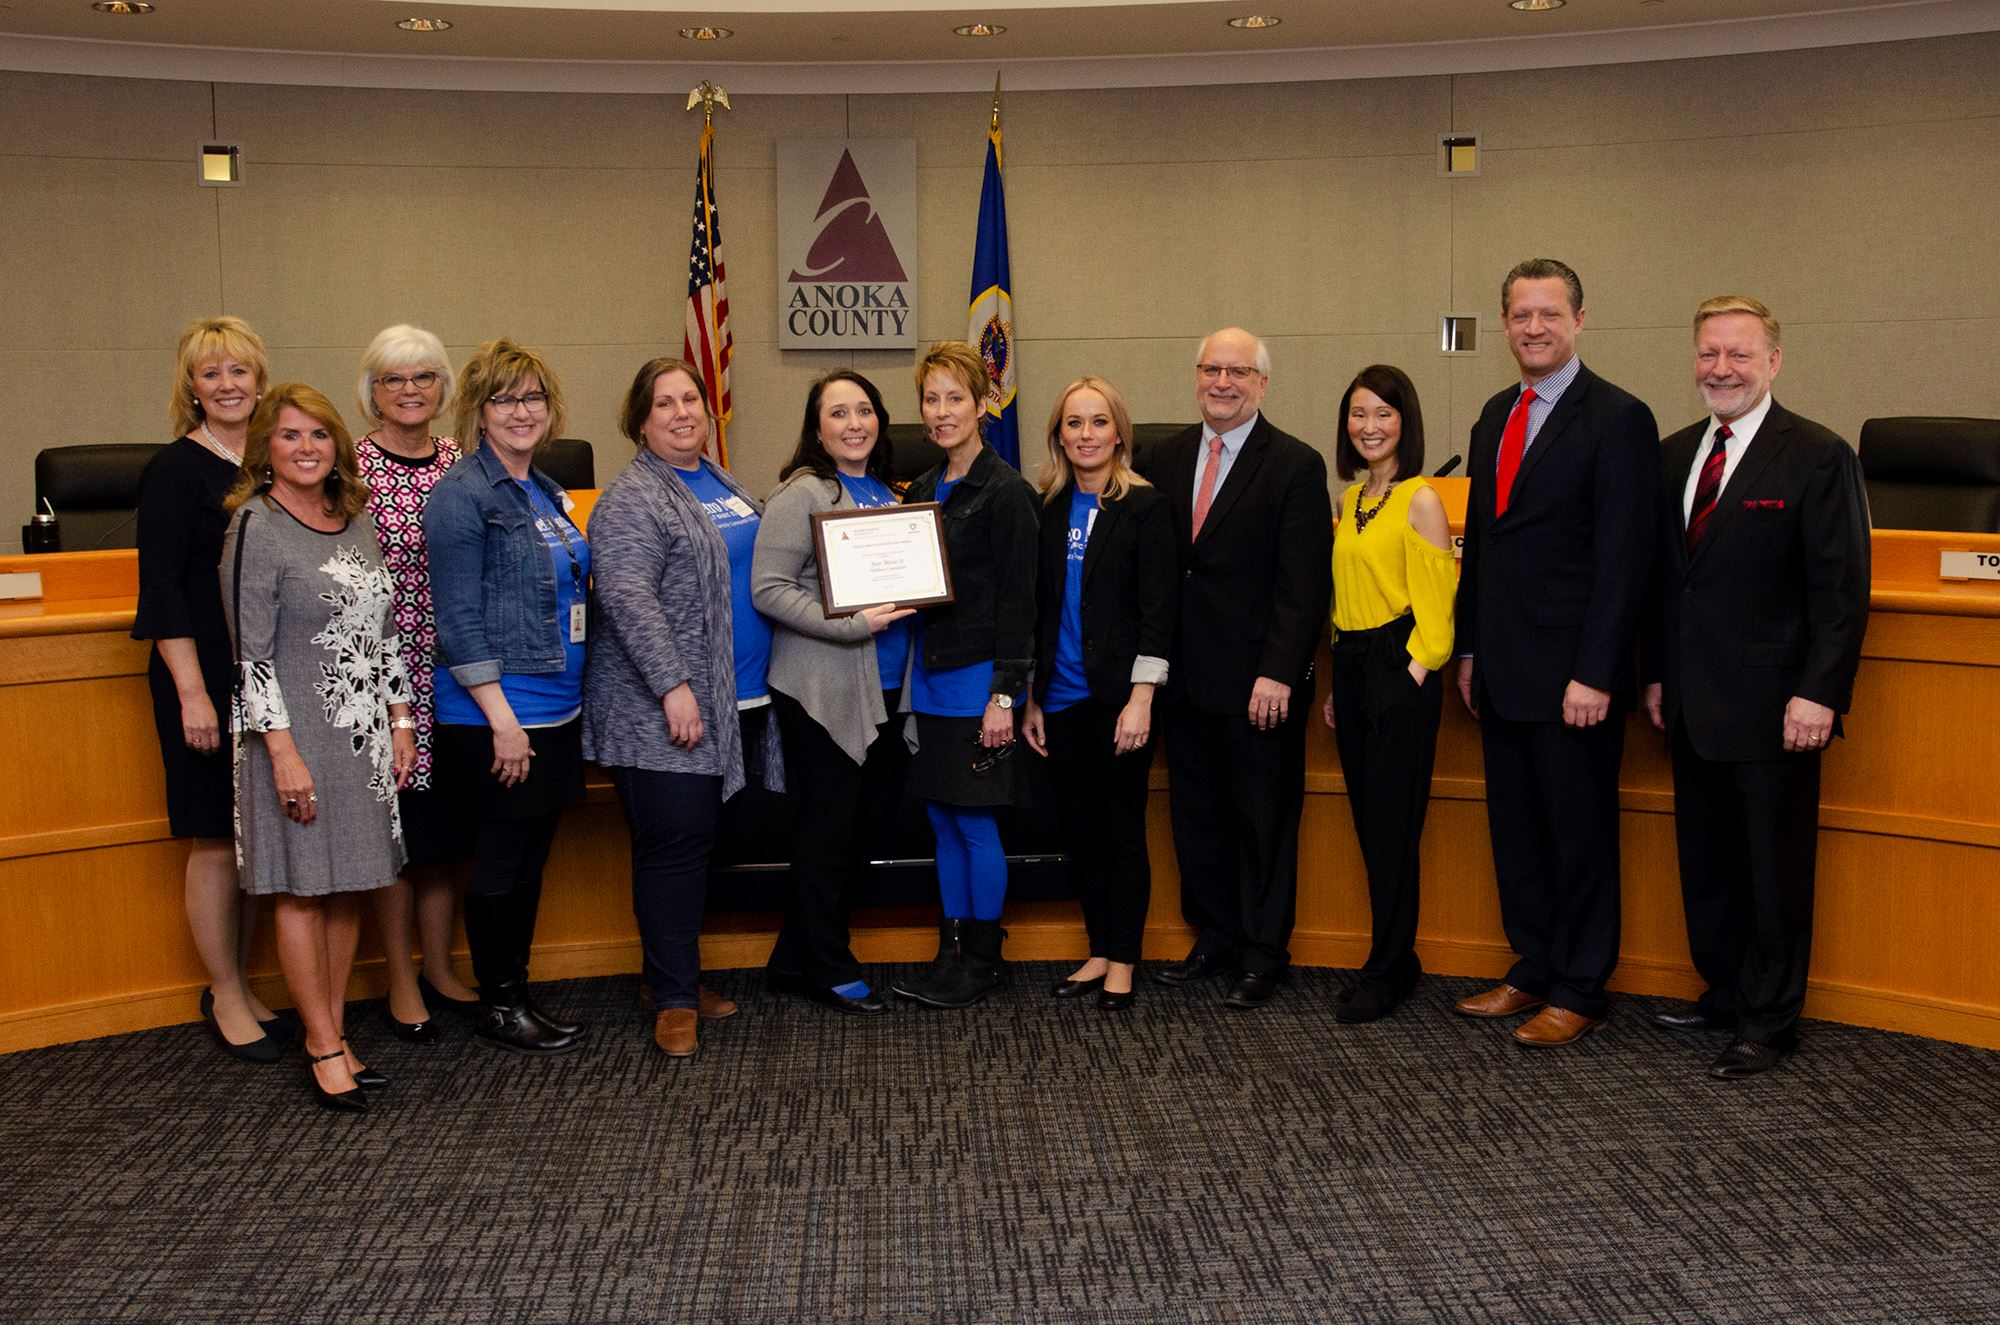 Just Move It Wellness Committee with commissioners receiving award